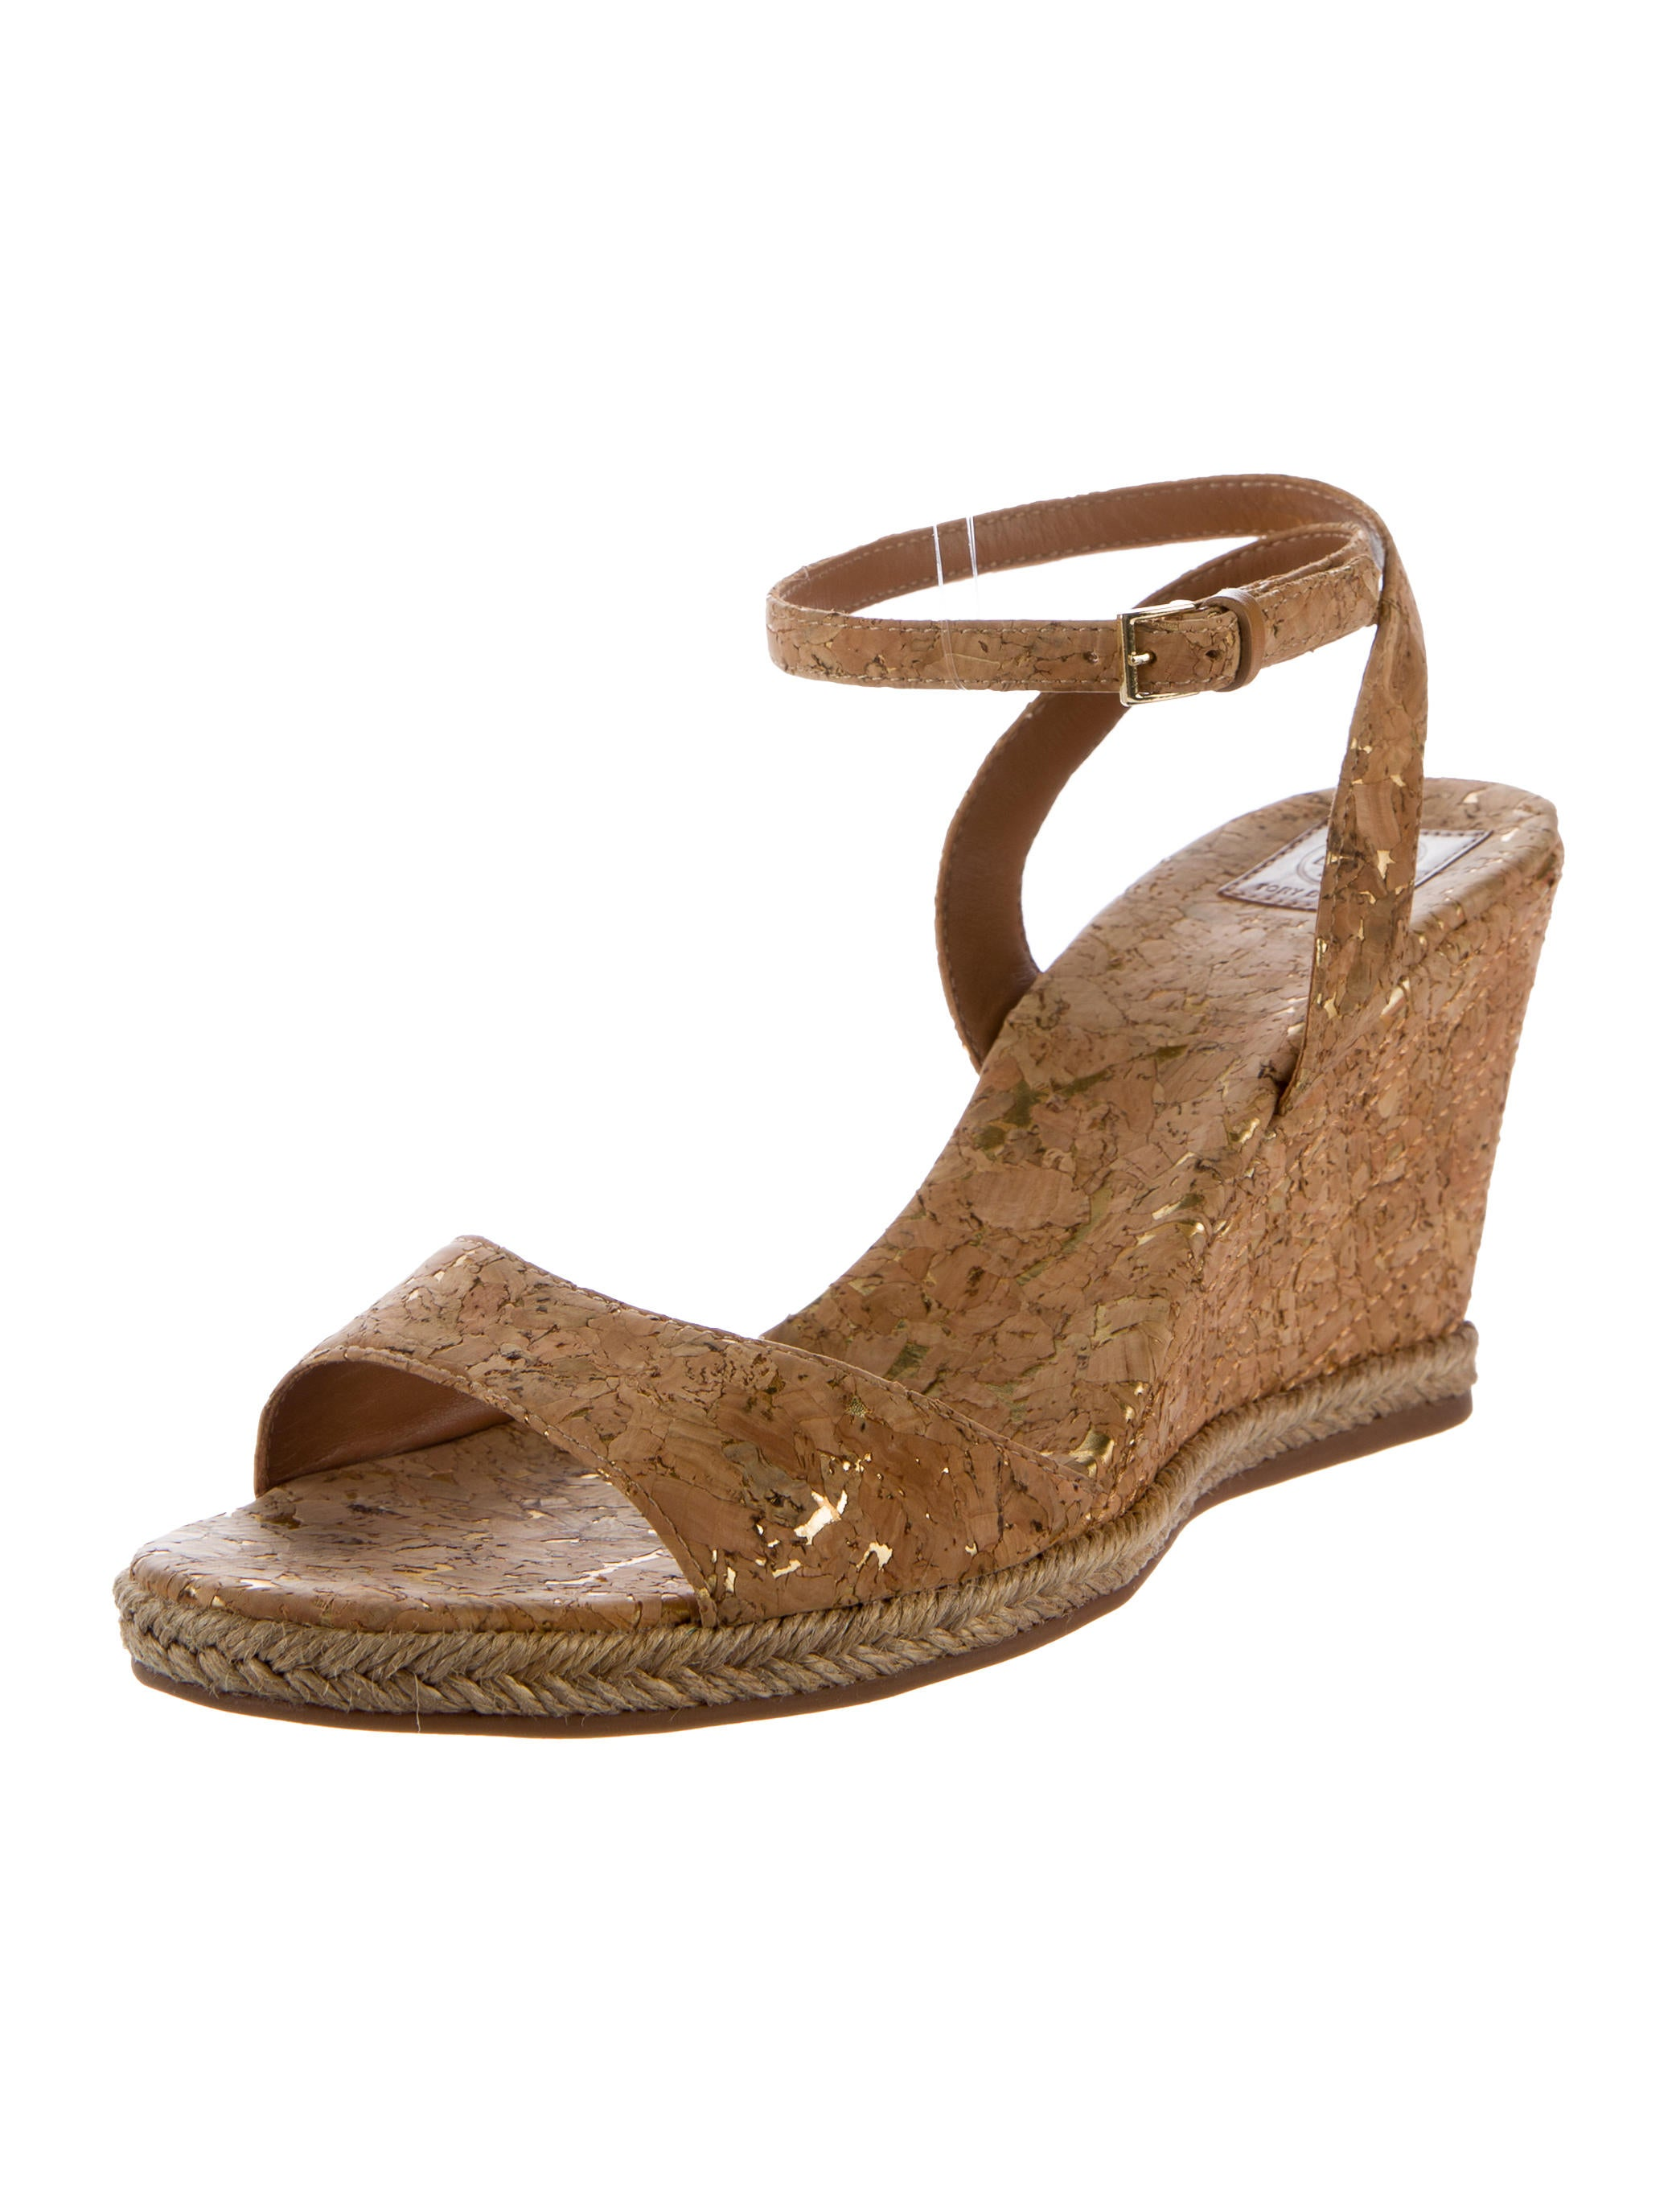 Tory Burch Cork Wedge Sandals Shoes Wto71201 The